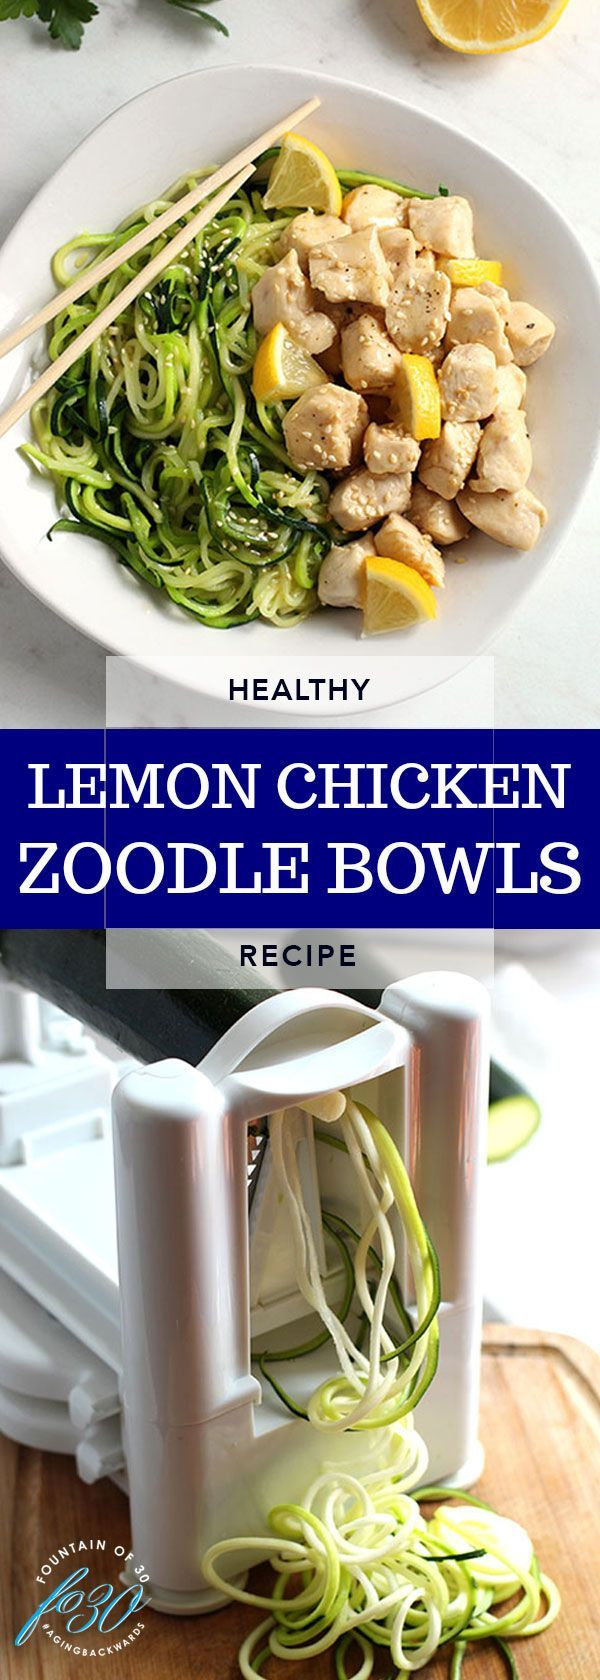 Lemon Chicken Zoodle Bowls - Dinner Time Recipes -